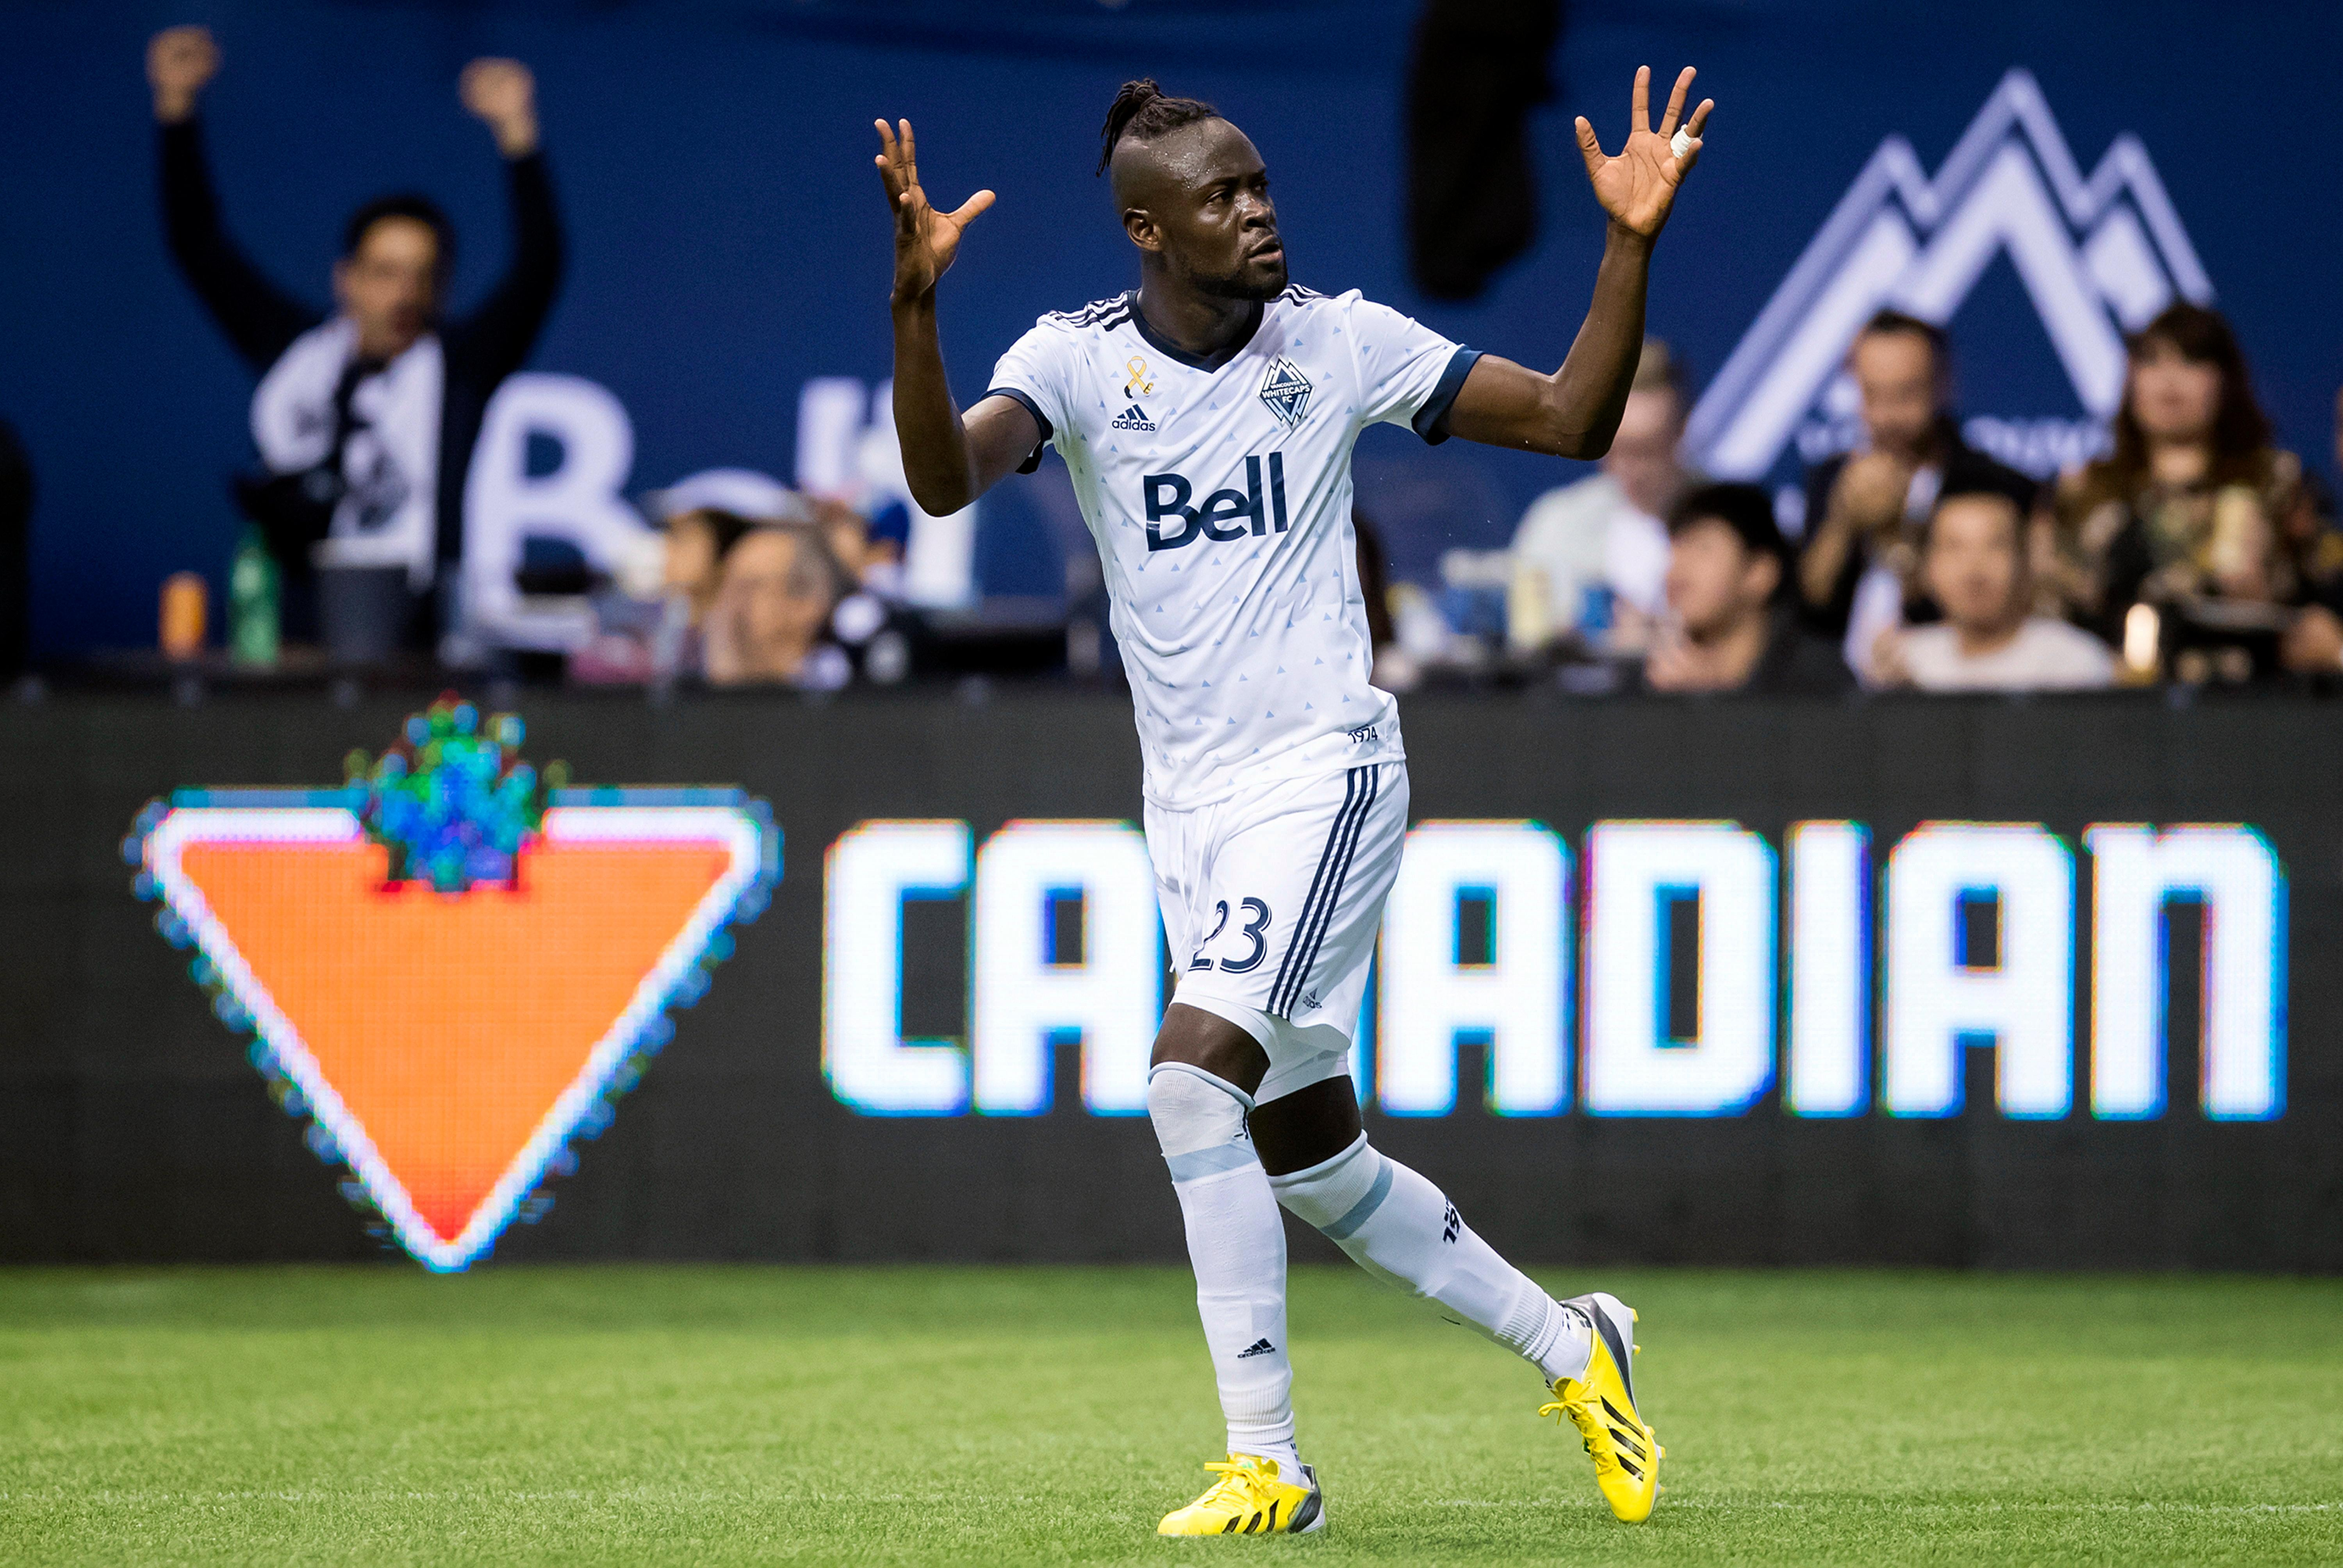 Vancouver Whitecaps' Kei Kamara celebrates his goal against the Seattle Sounders during the first half of an MLS soccer match, Saturday, Sept. 15, 2018, in Vancouver, British Columbia. (Darryl Dyck/The Canadian Press via AP)